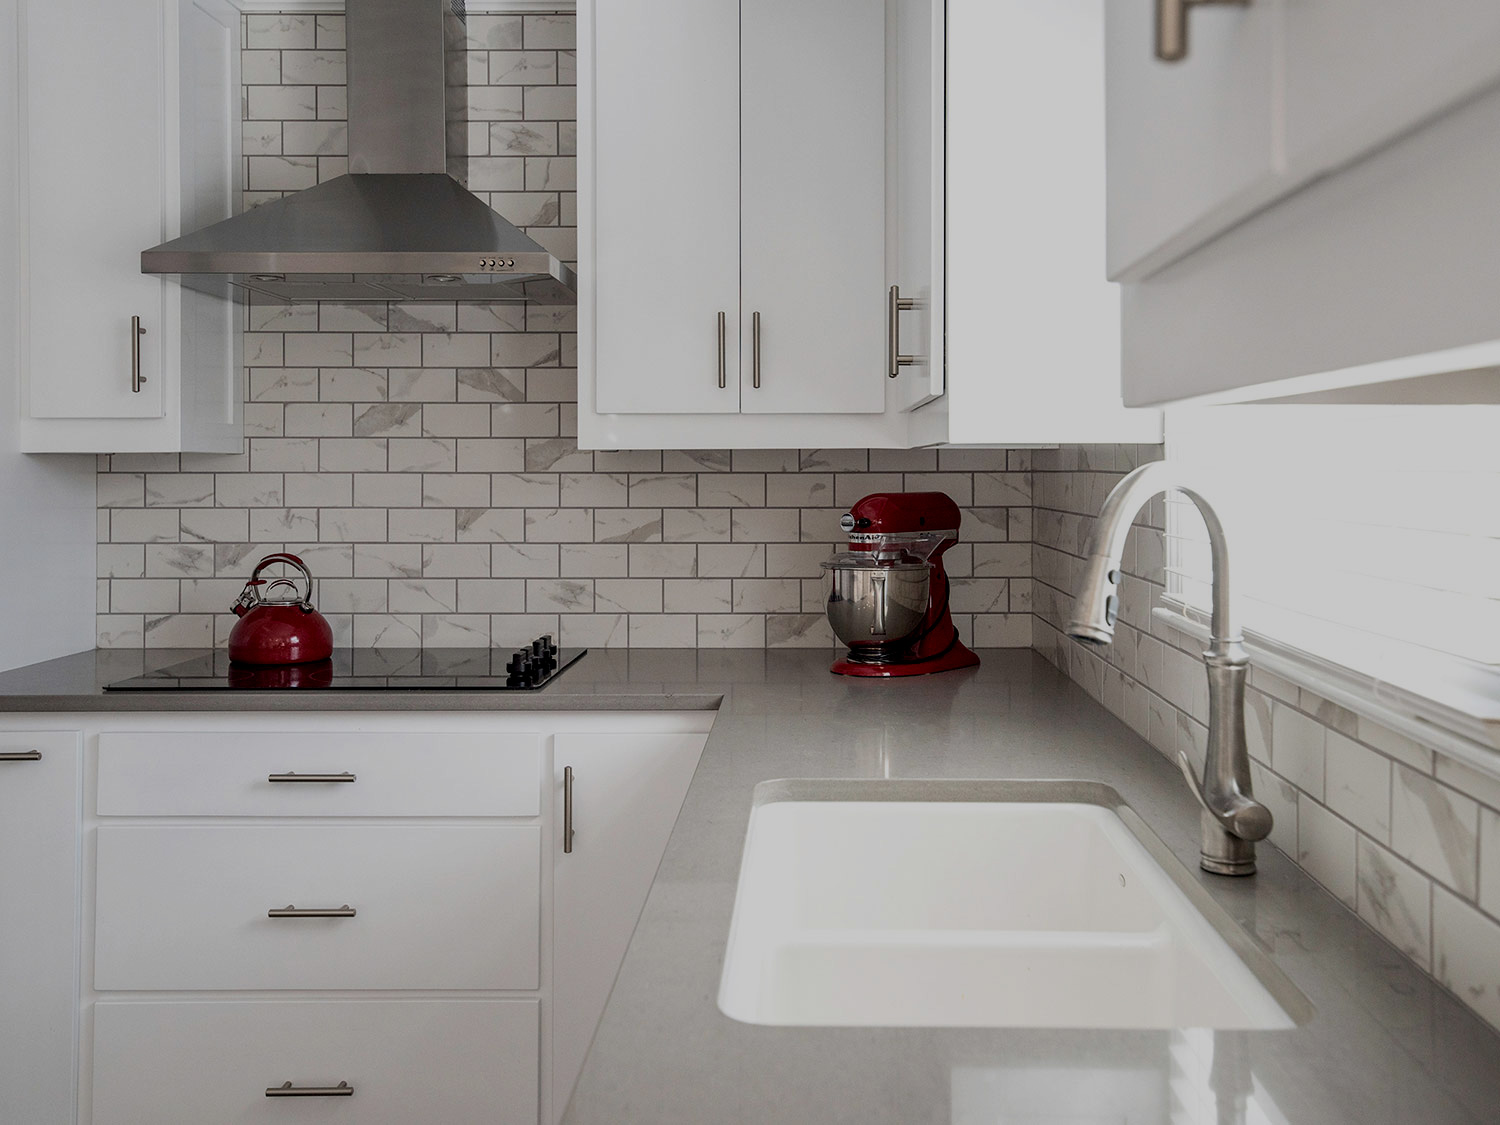 kitchen-8-low-res-bright.jpg